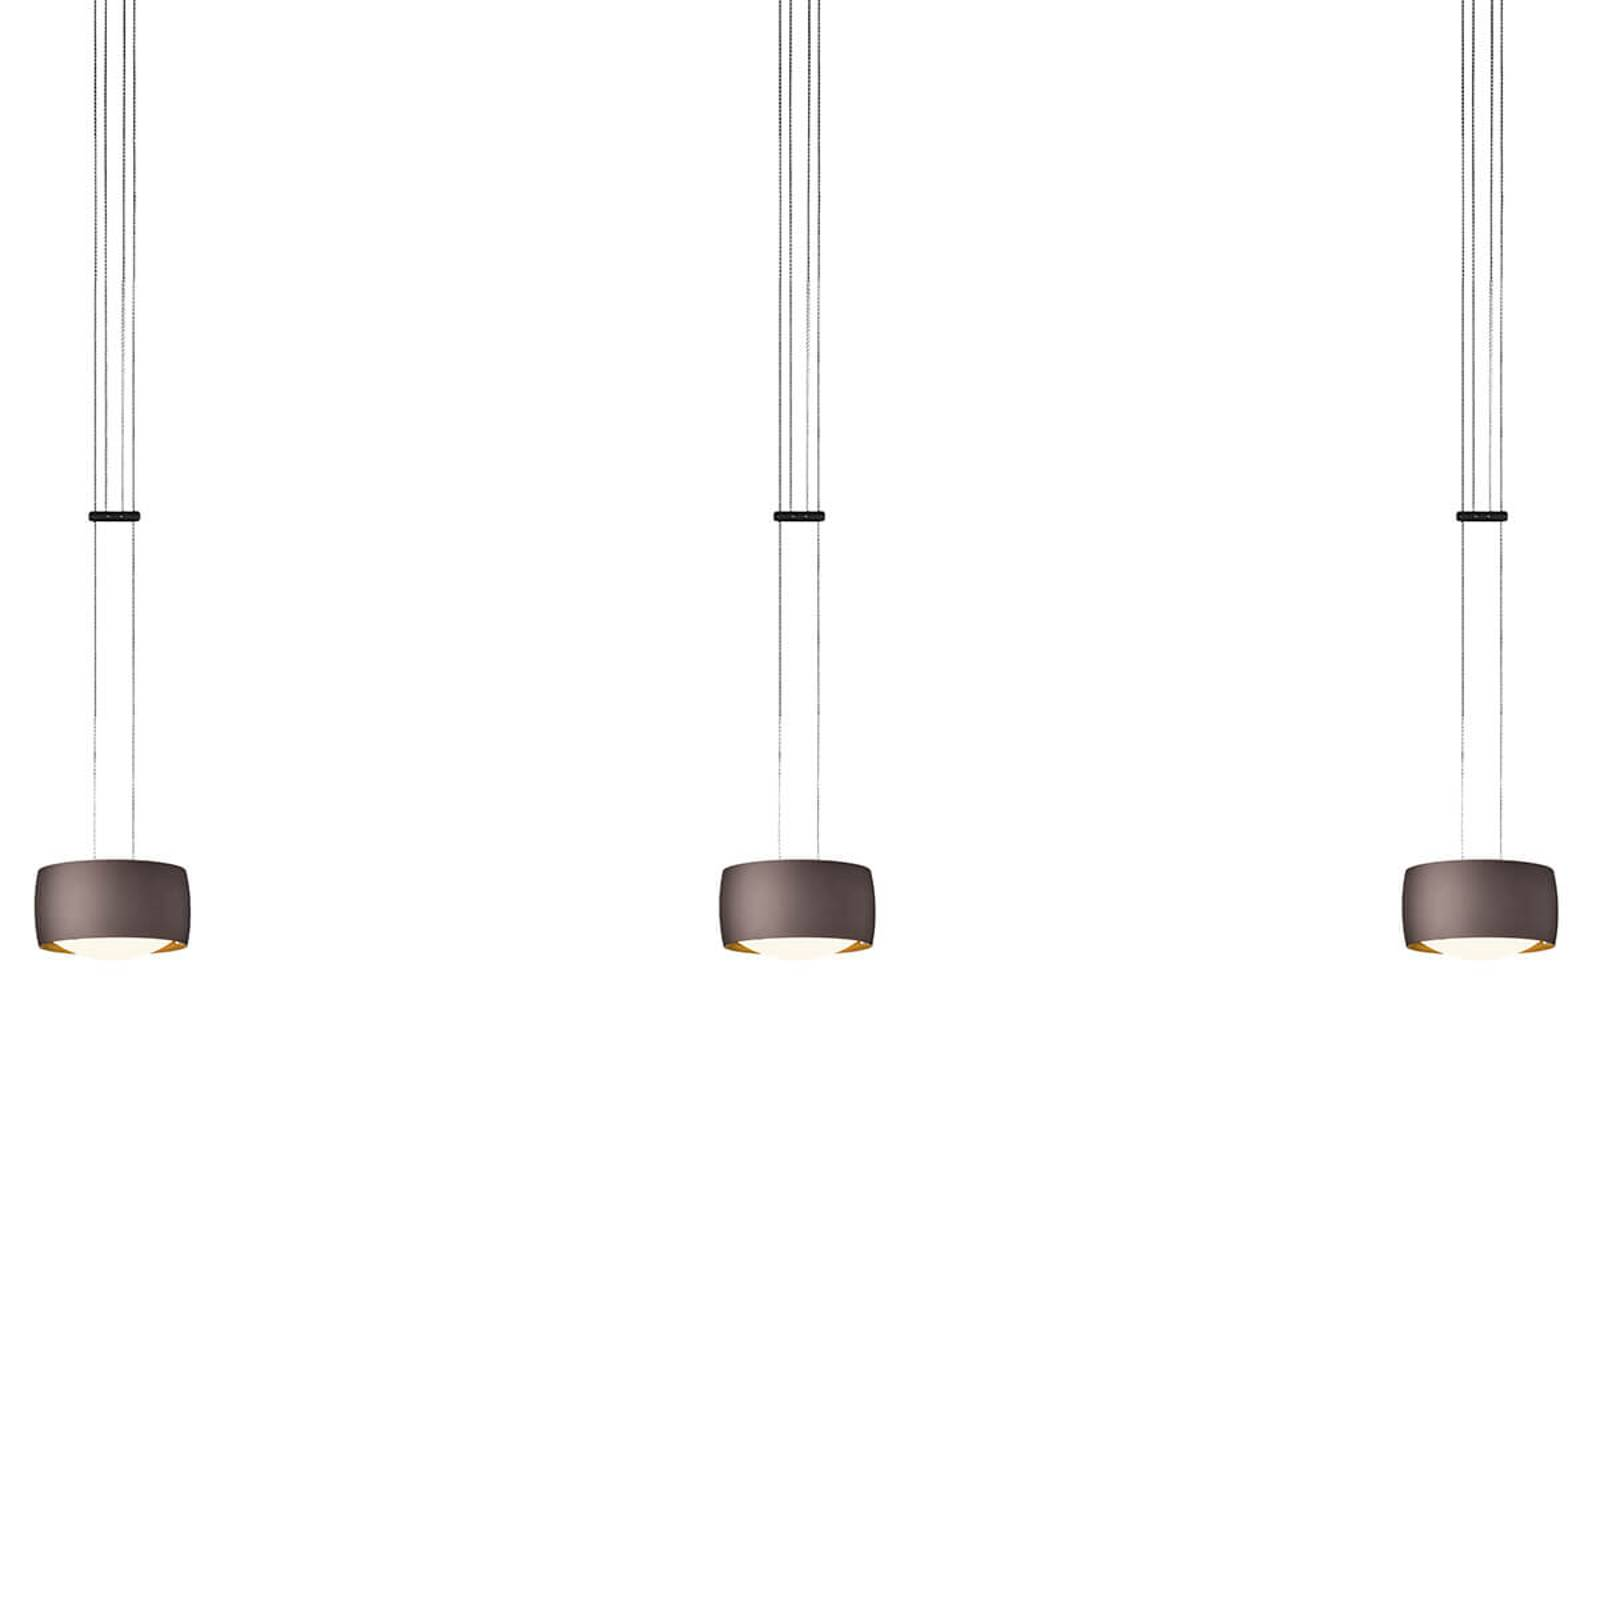 OLIGO Grace LED hanging light 3-bulb brown from Oligo